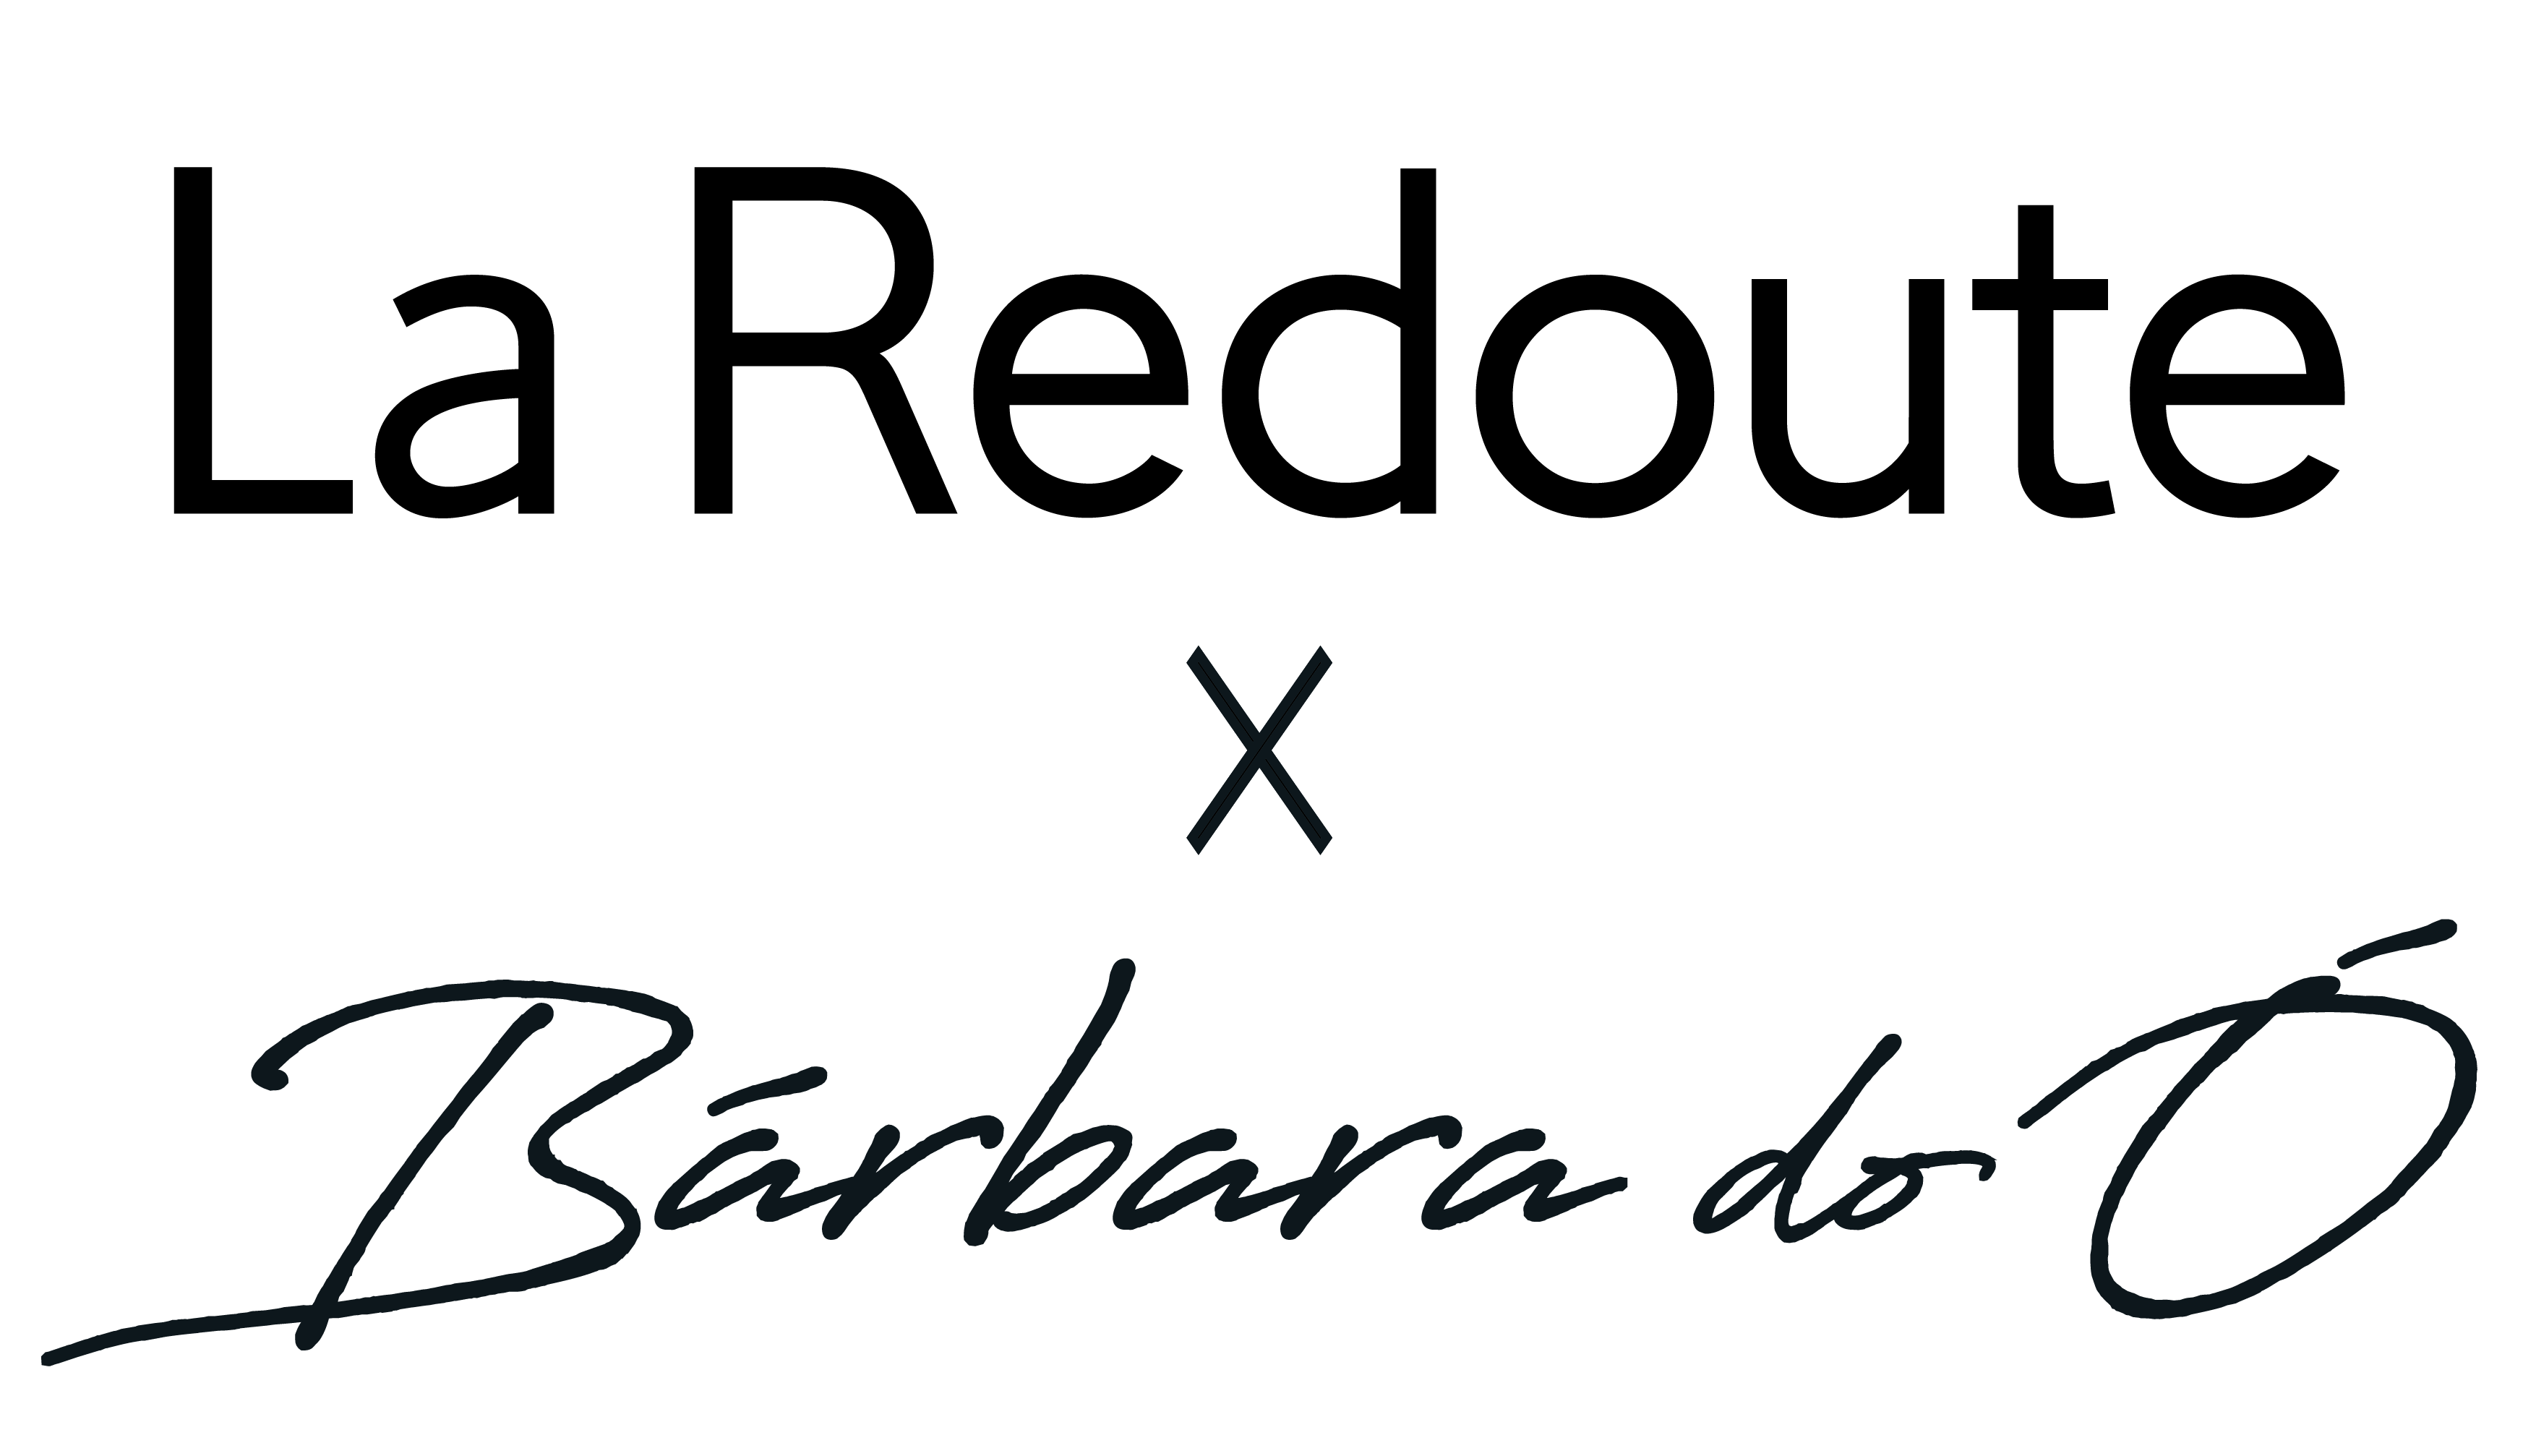 La Redoute_BarbaraO-1.png